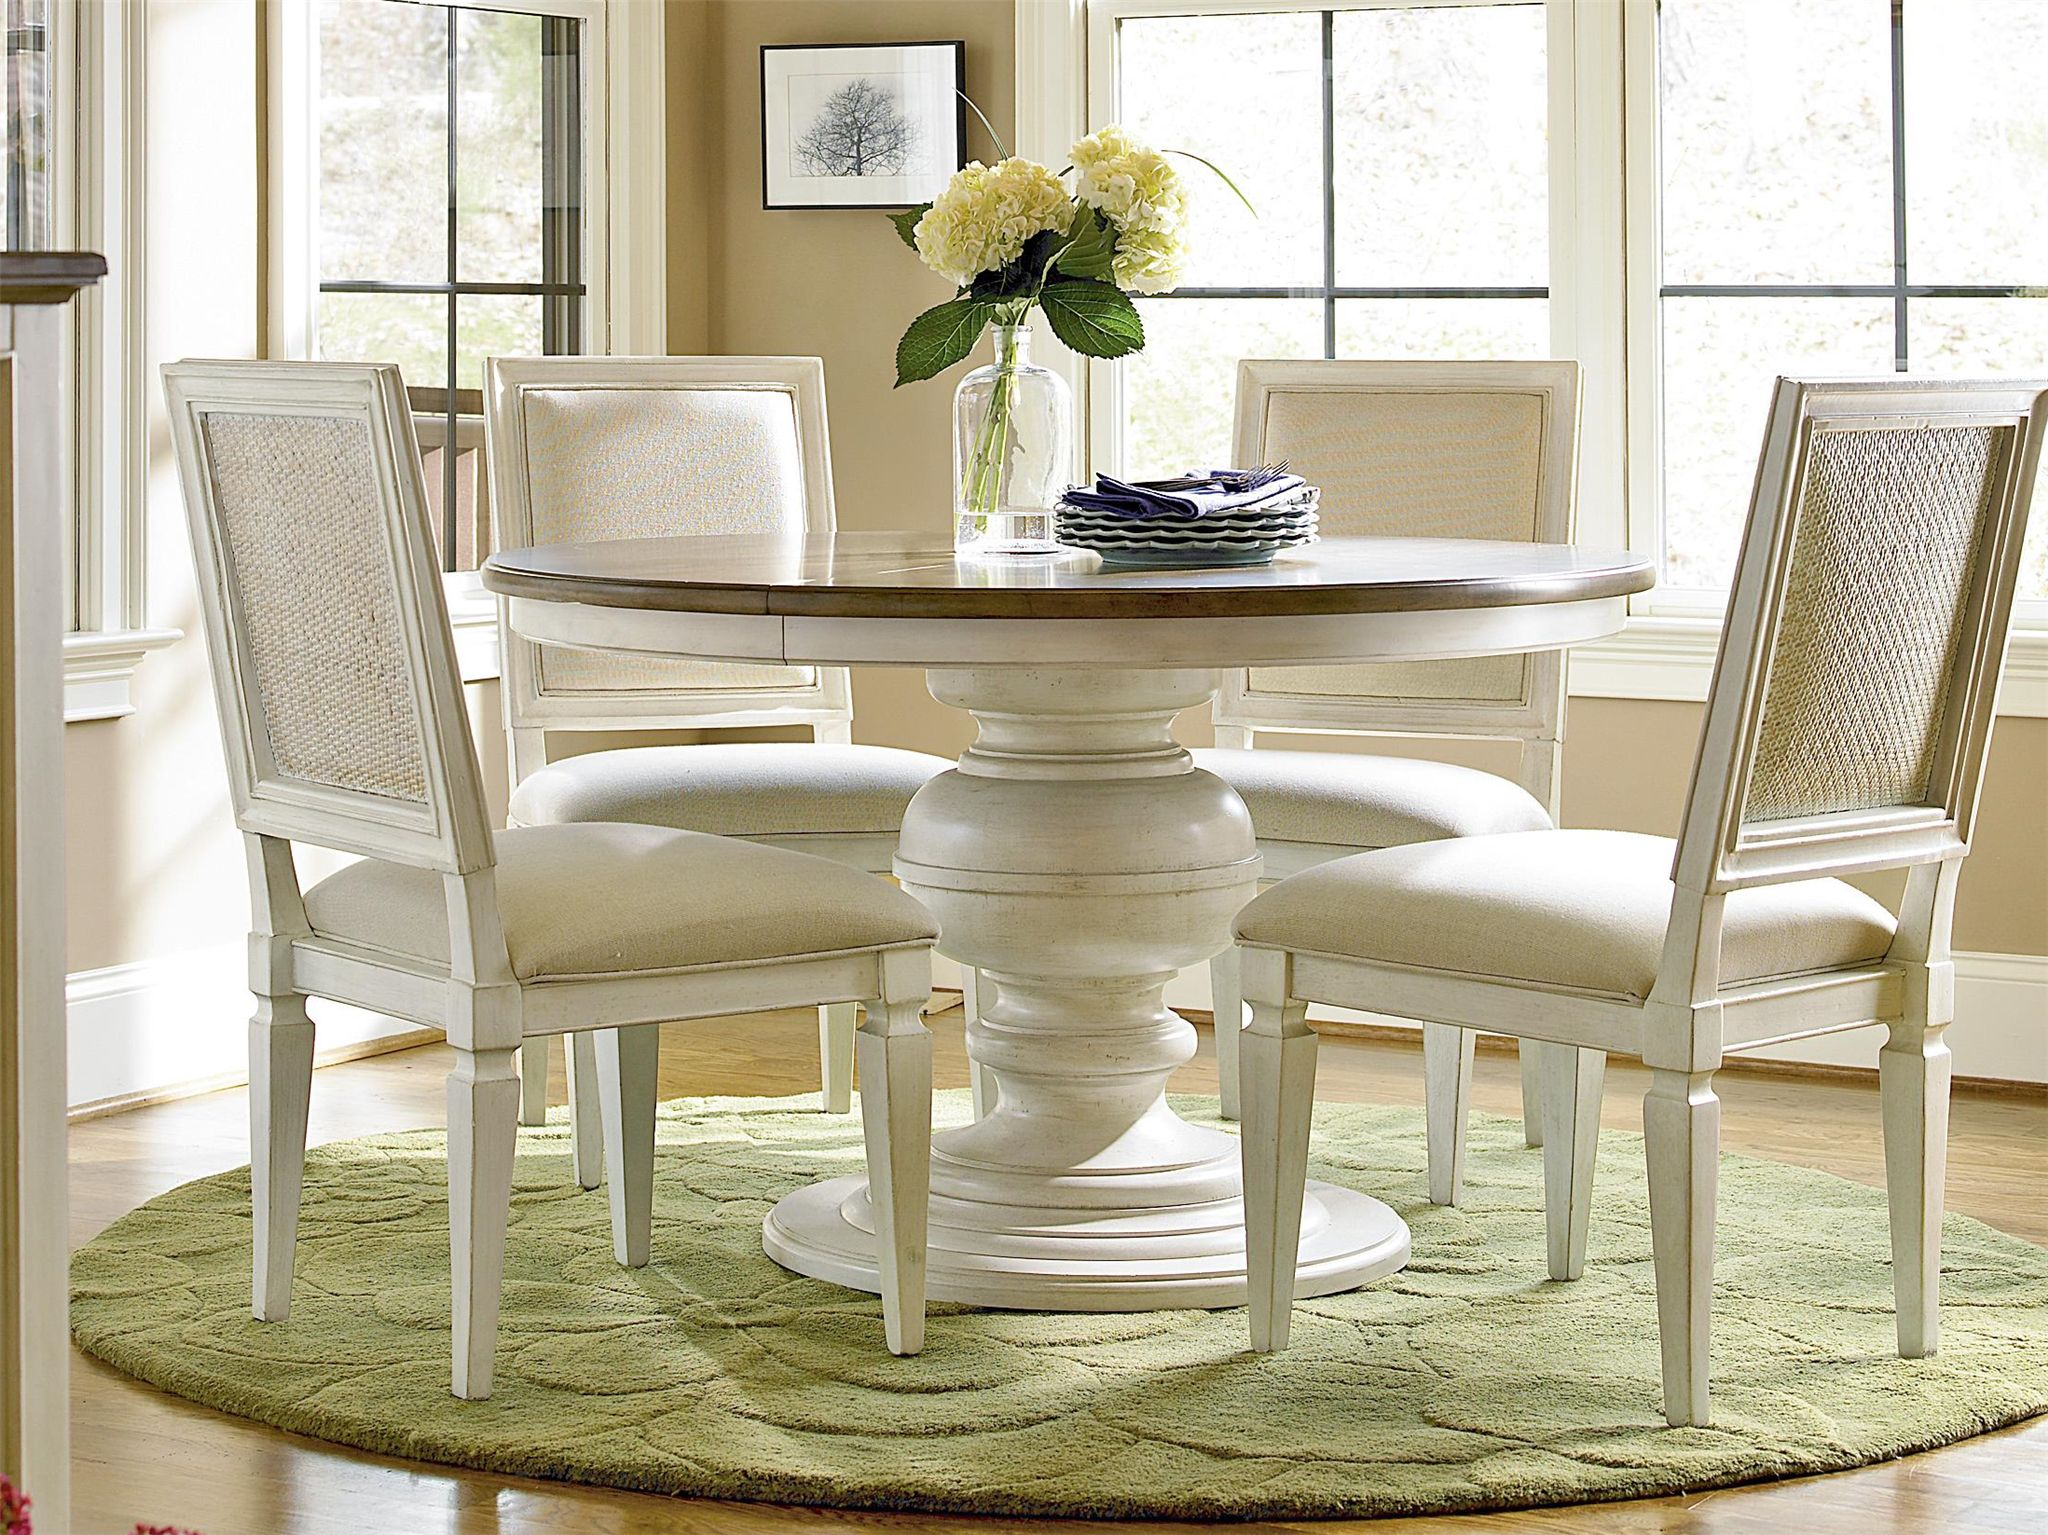 Universal Furniture Summer Hill Round Dining Table Round